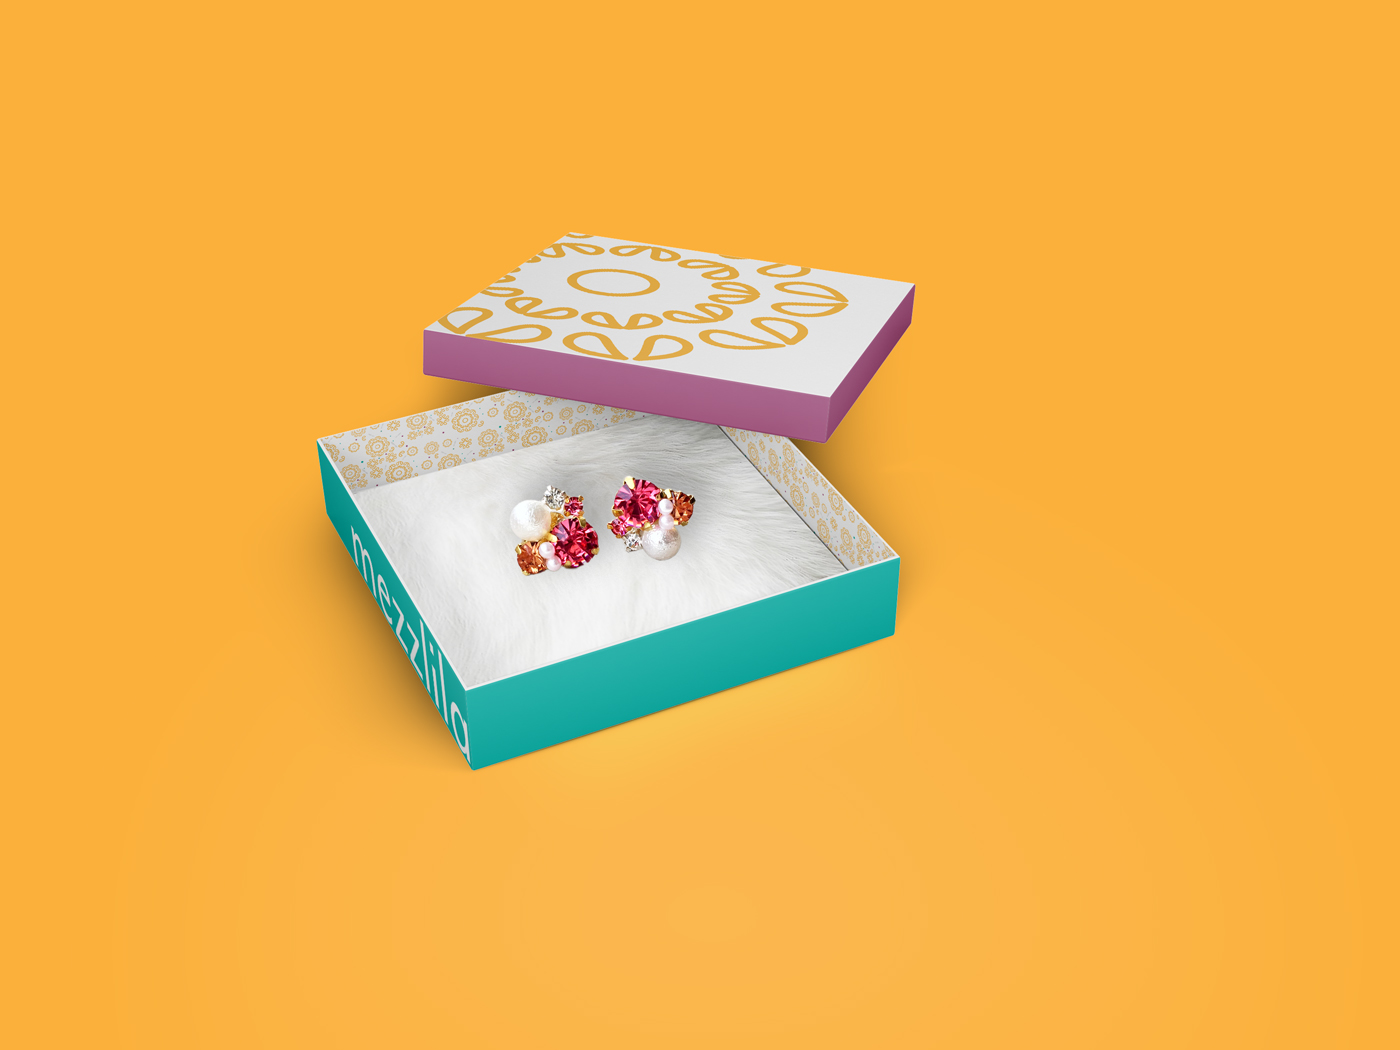 mezzlila jewelry box with earrings